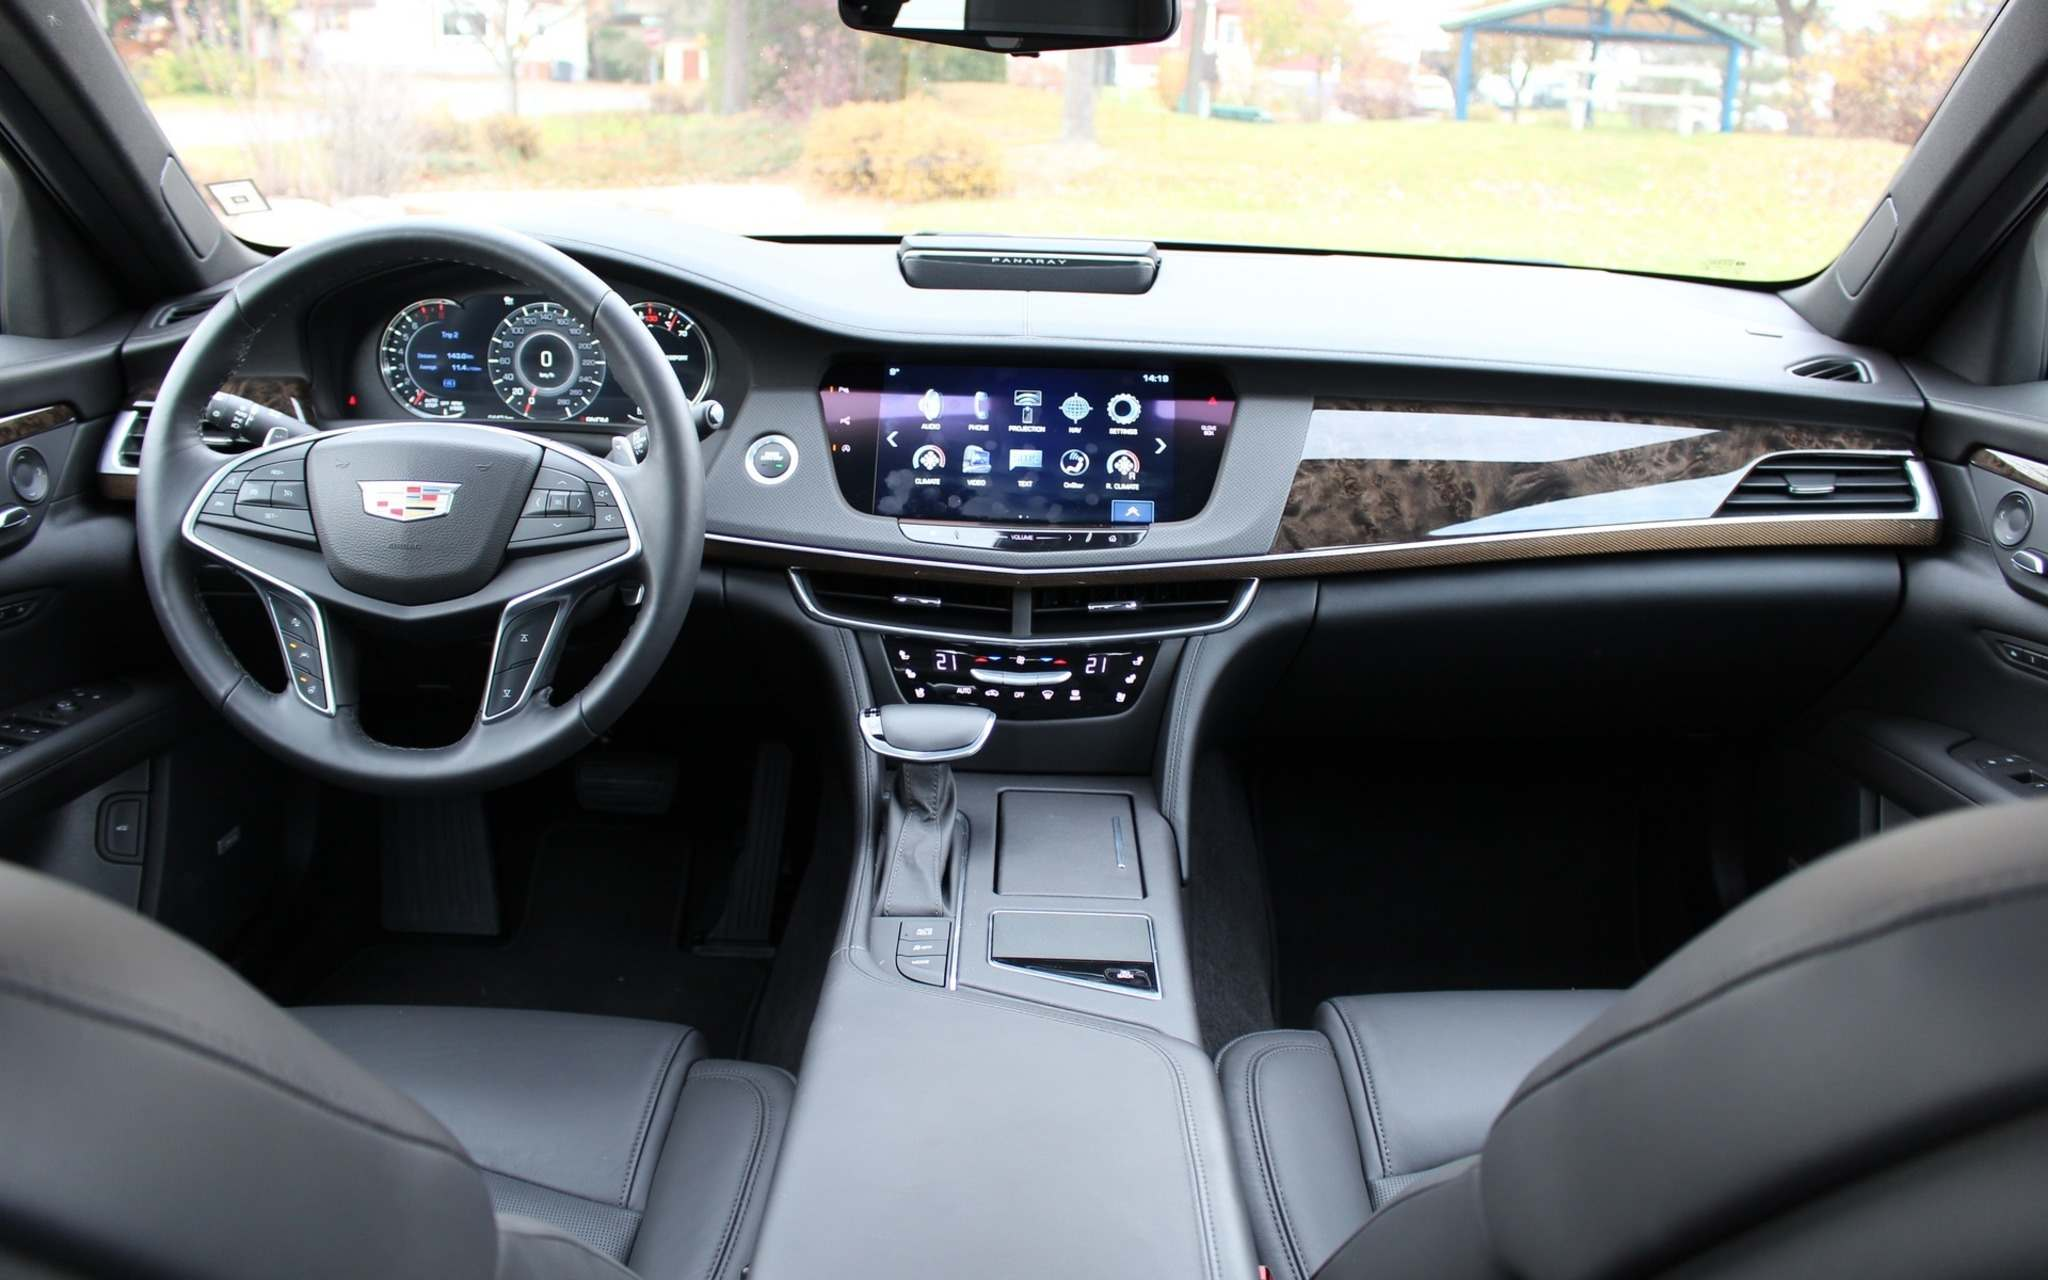 Inside, the 2016 Cadillac CT6's fit and finish is swell. The overall design is simple and elegant.